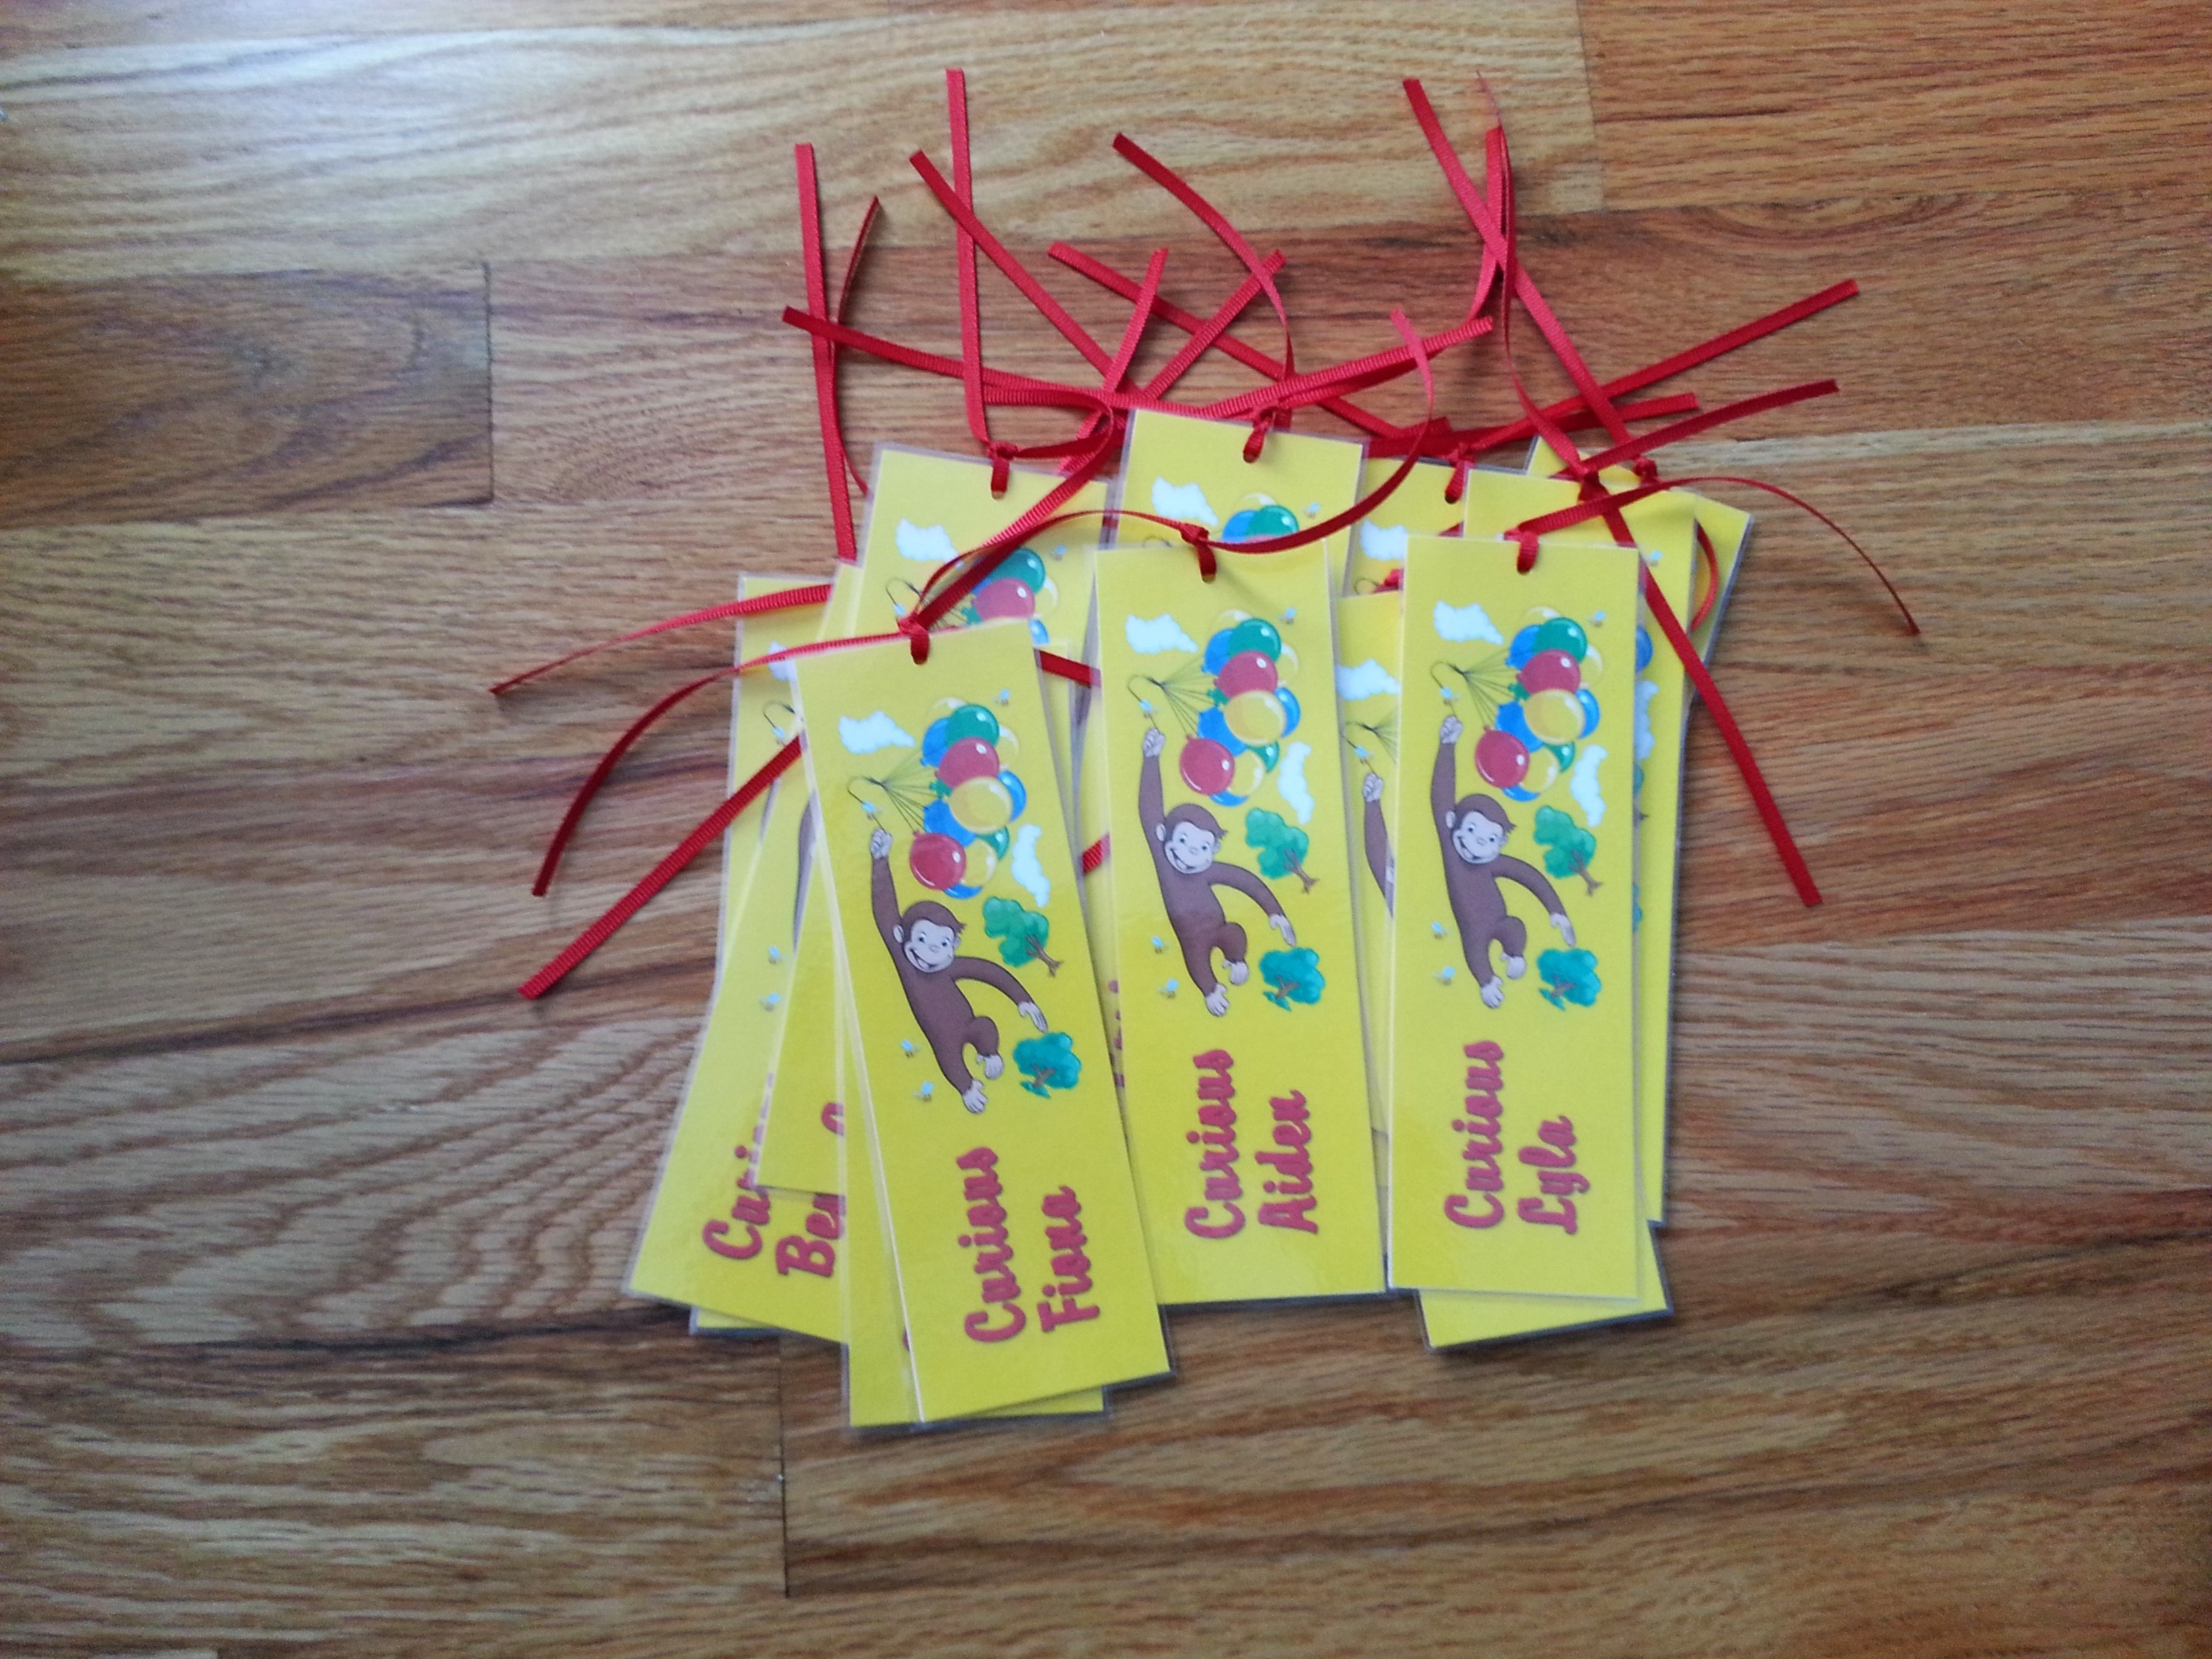 10 Awesome Curious George Party Favor Ideas a curious george party a crafty mom 2020